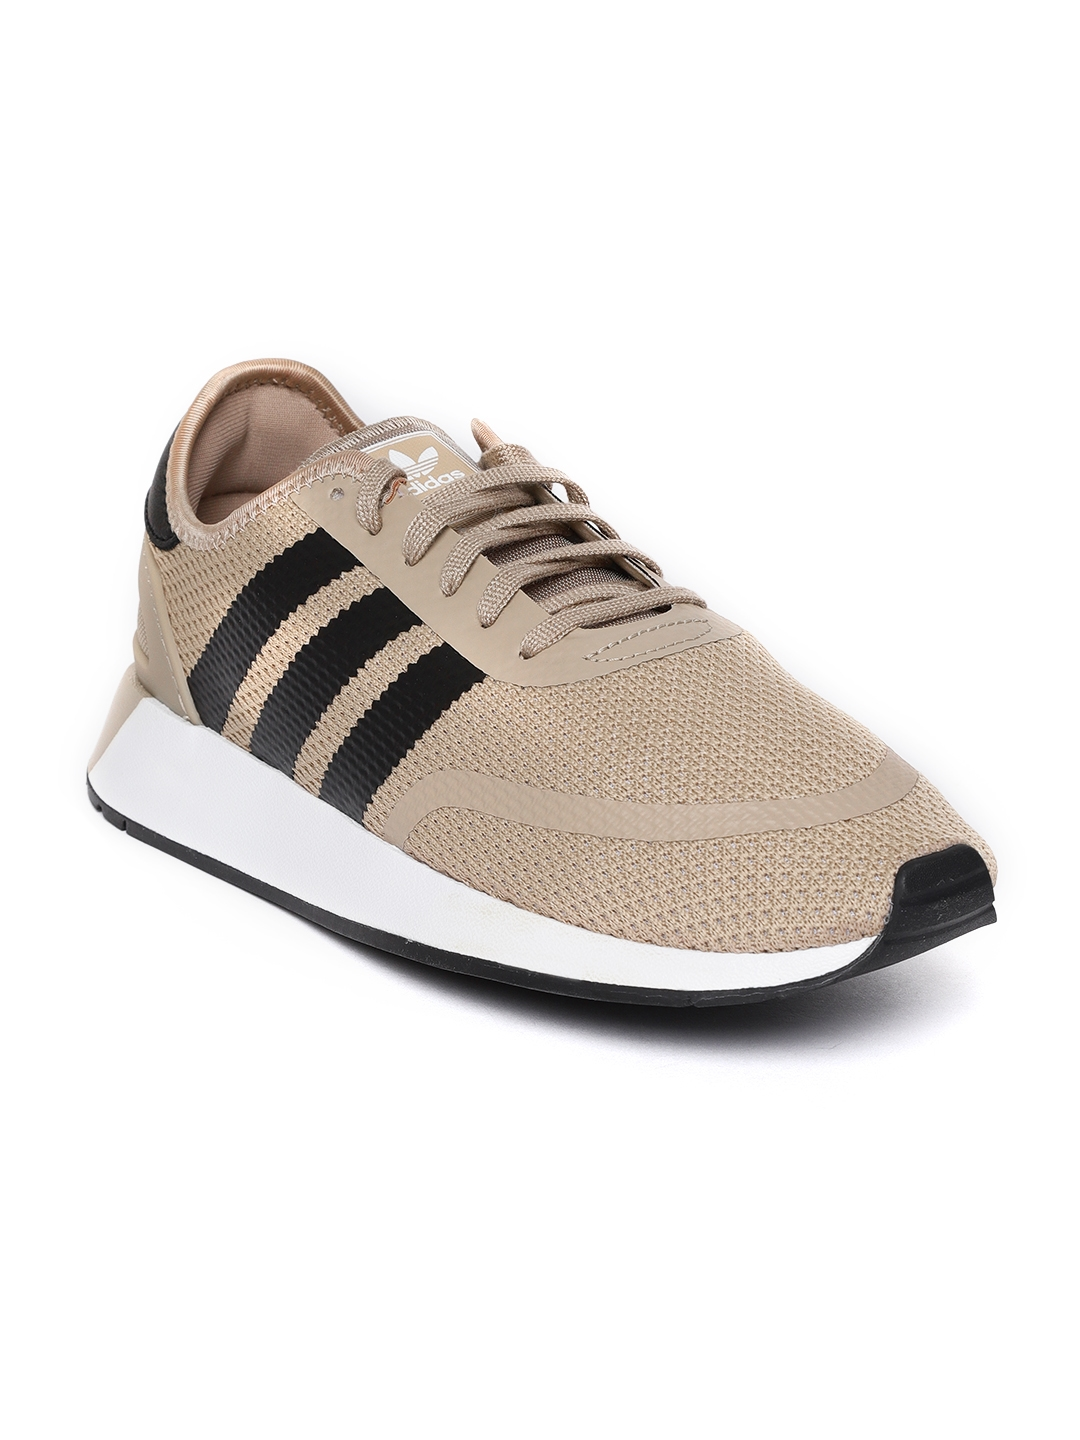 adidas art b37955 buy clothes shoes online